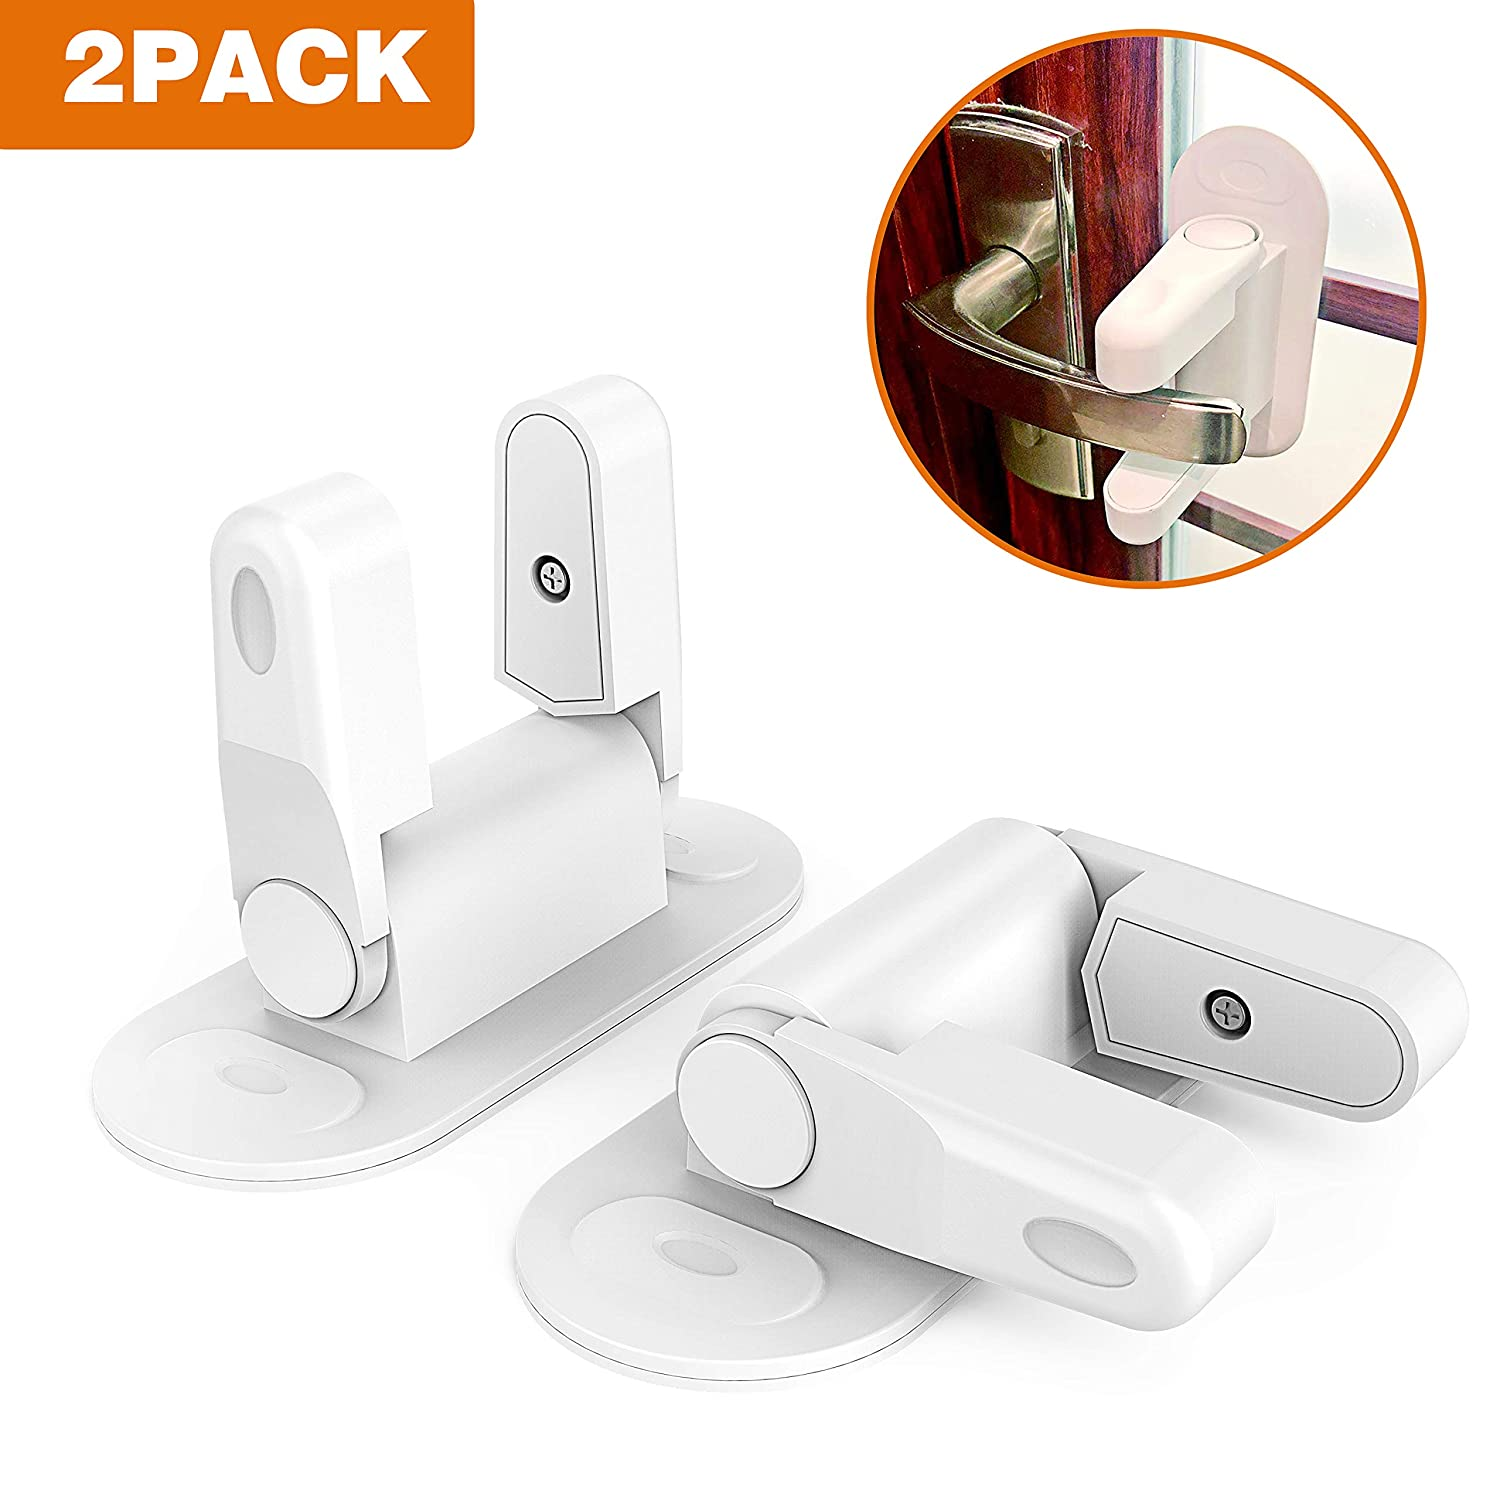 Door Lever Lock, 2 Pack Strong Adhesive Child Safety Proof Door Handles Locks for Window Bedroom Kitchen Bathroom Front Gate Doors Drawers Cabinets Dishwasher D-MSH-02